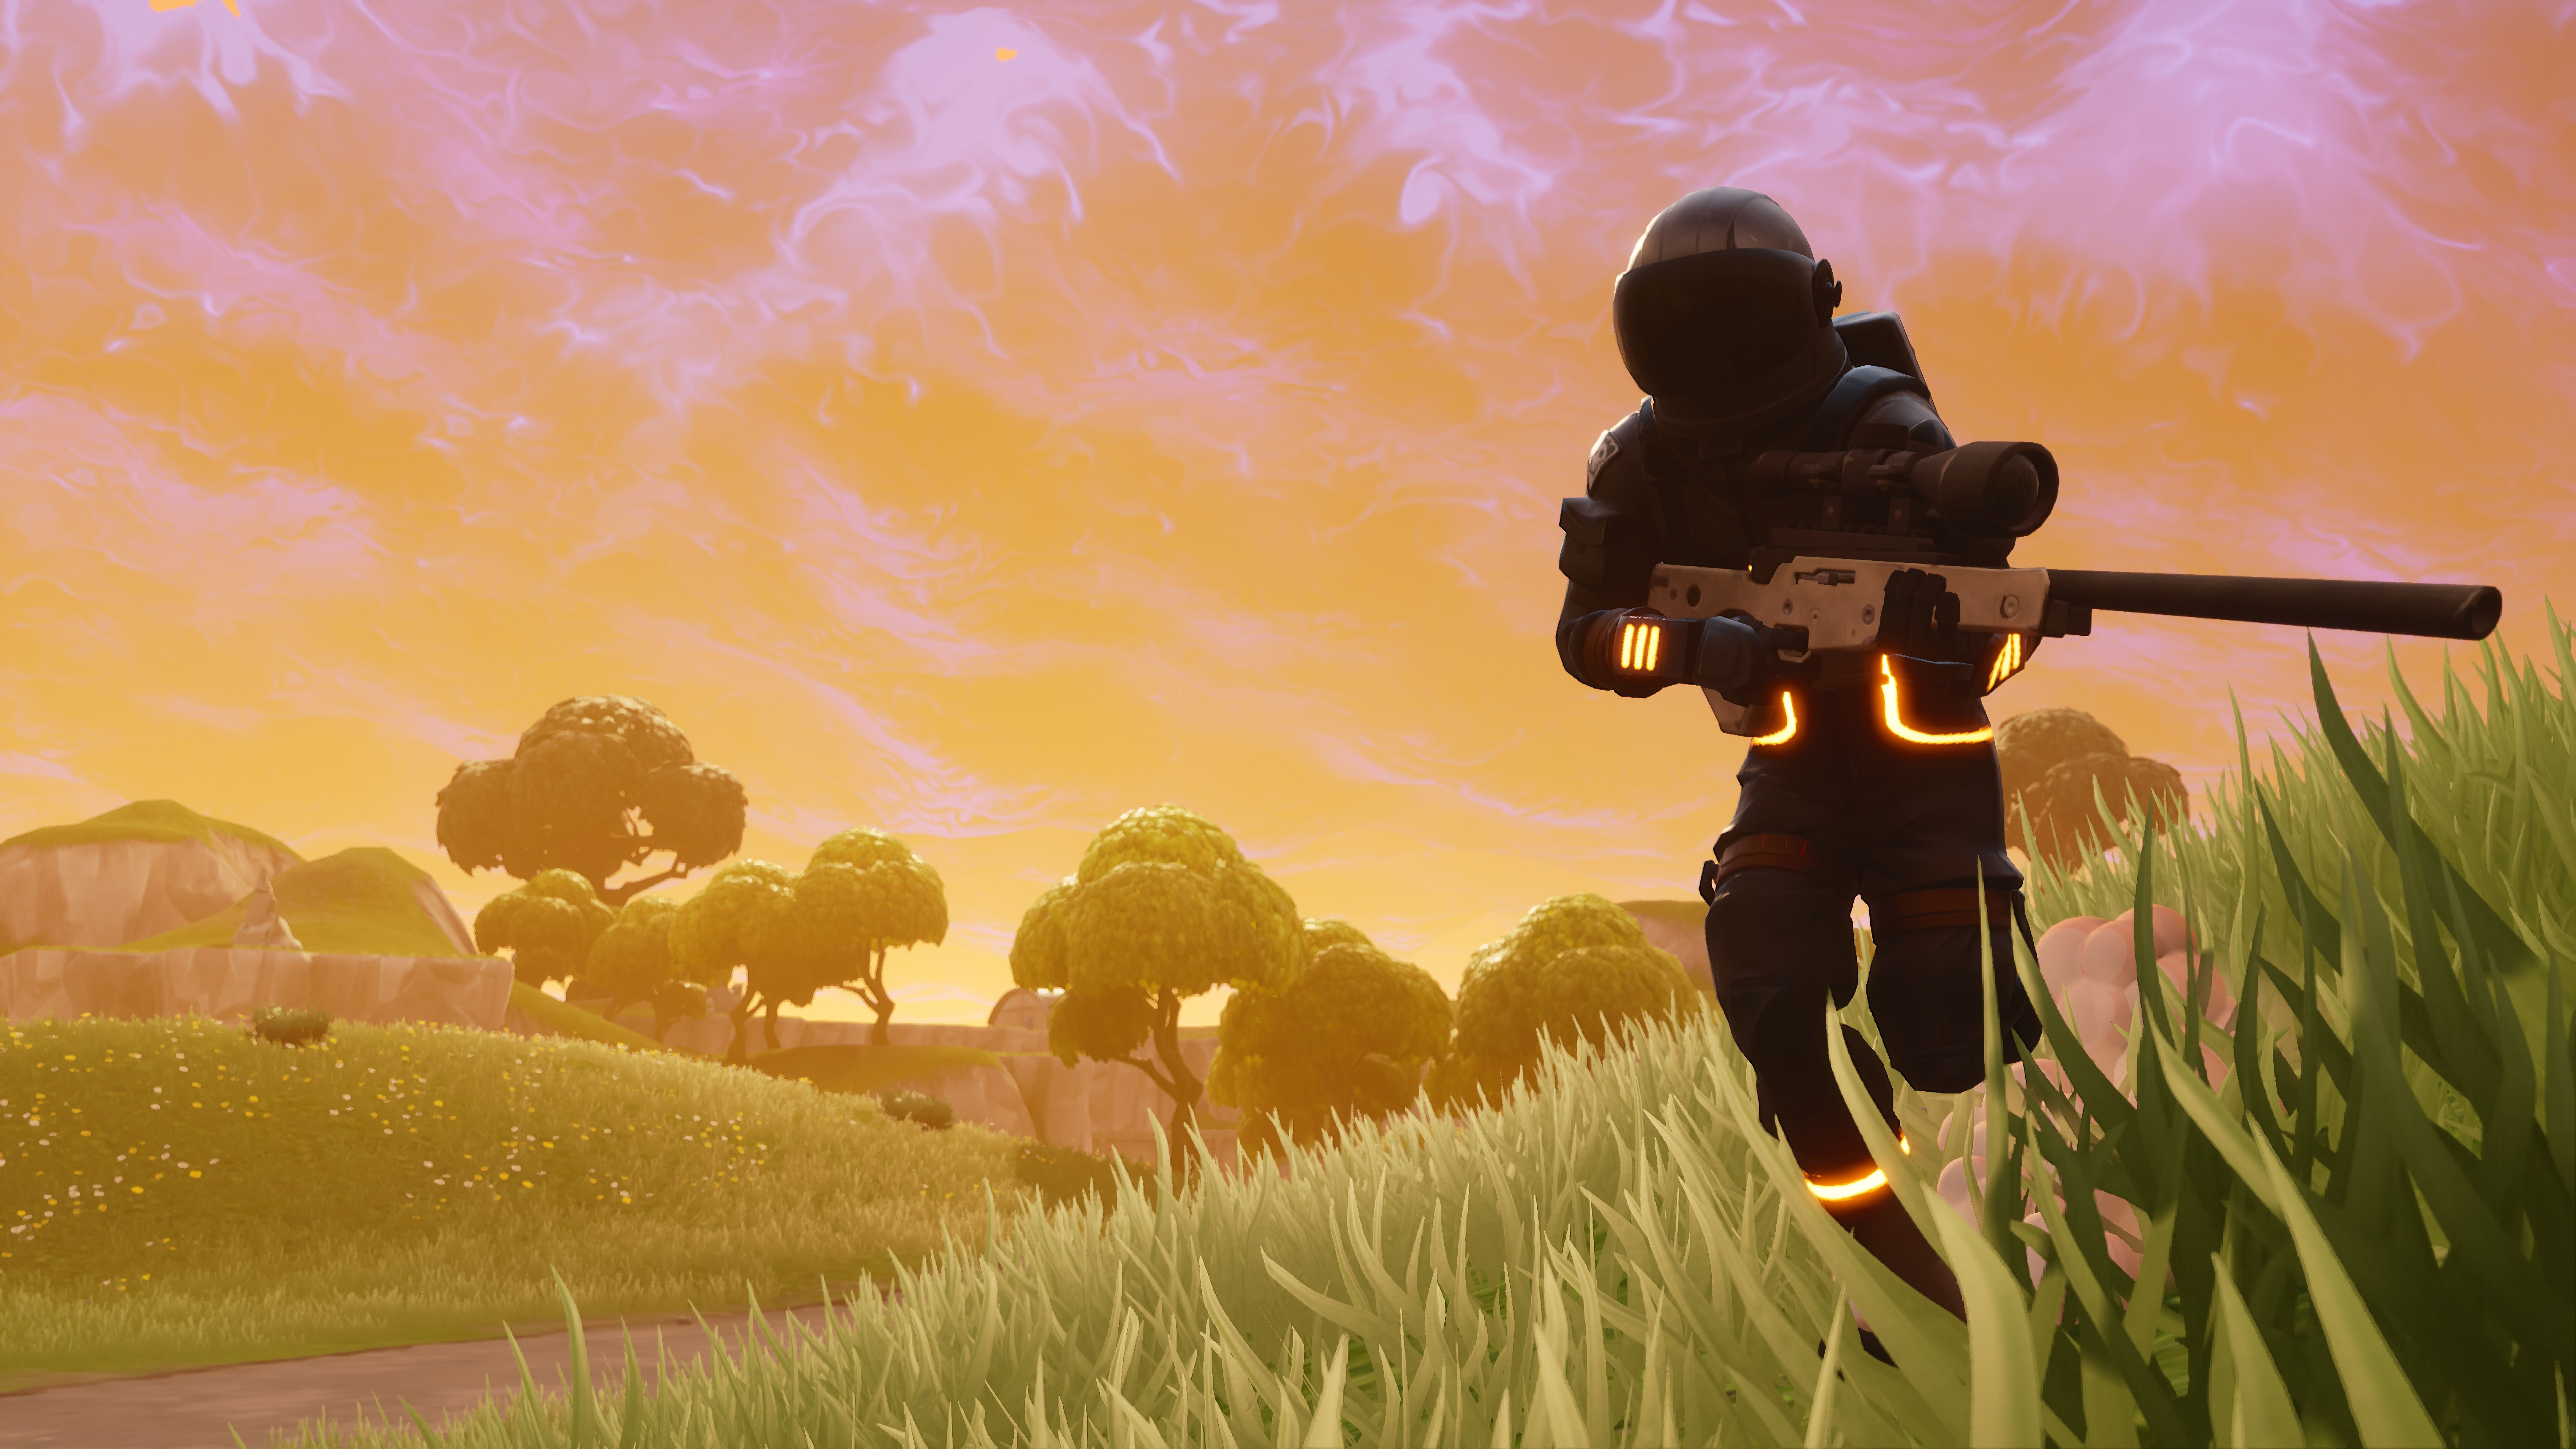 Free download Dark Voyager Wallpapers HD 4K 8K Fortnite Battle